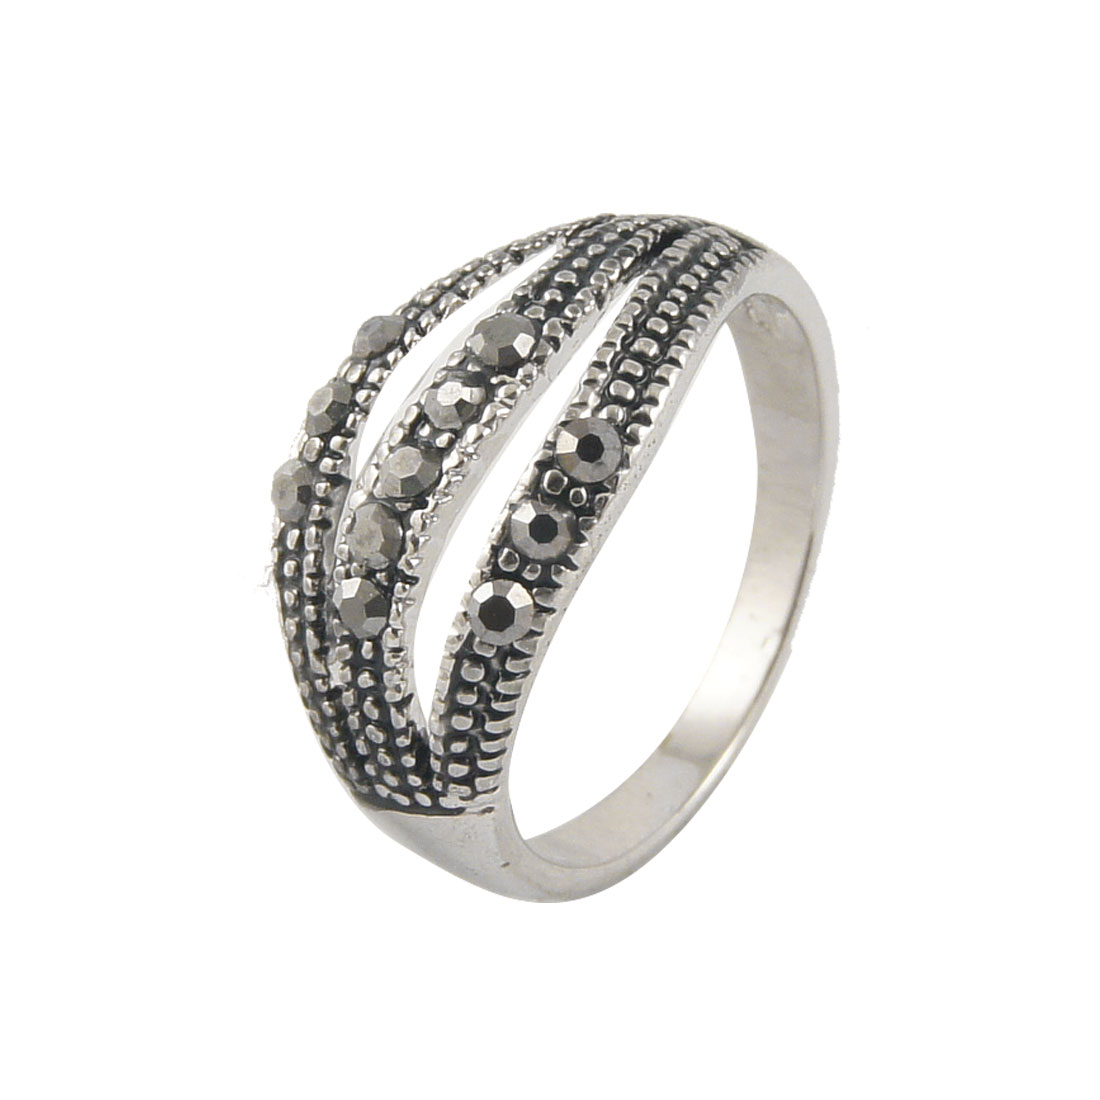 Gray Rhinestone Detail Silver Tone Finger Ring US 5 for Lady